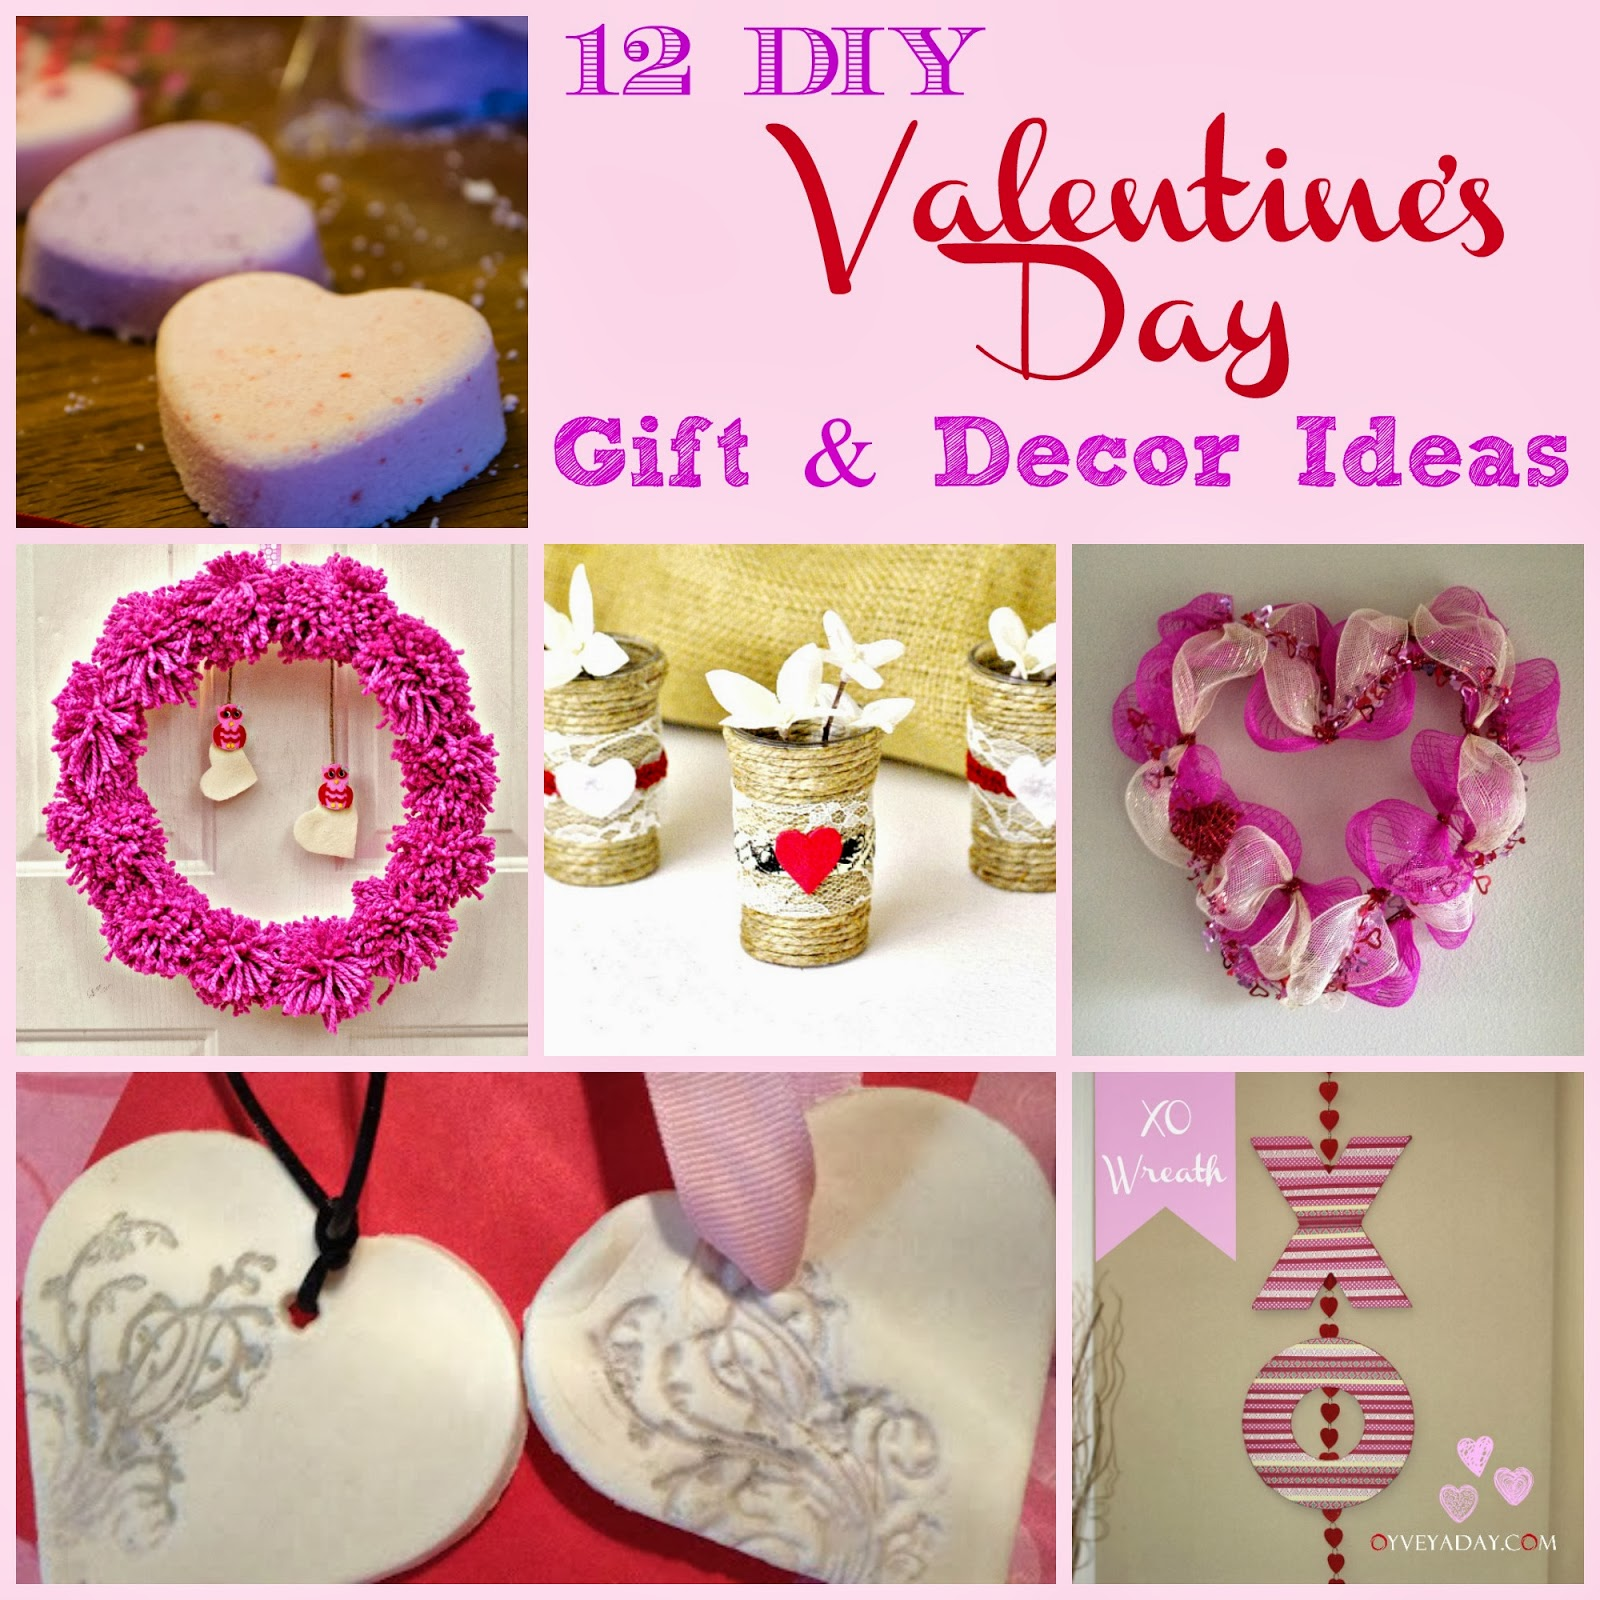 12 diy valentine 39 s day gift decor ideas outnumbered 3 to 1 for Valentine day at home